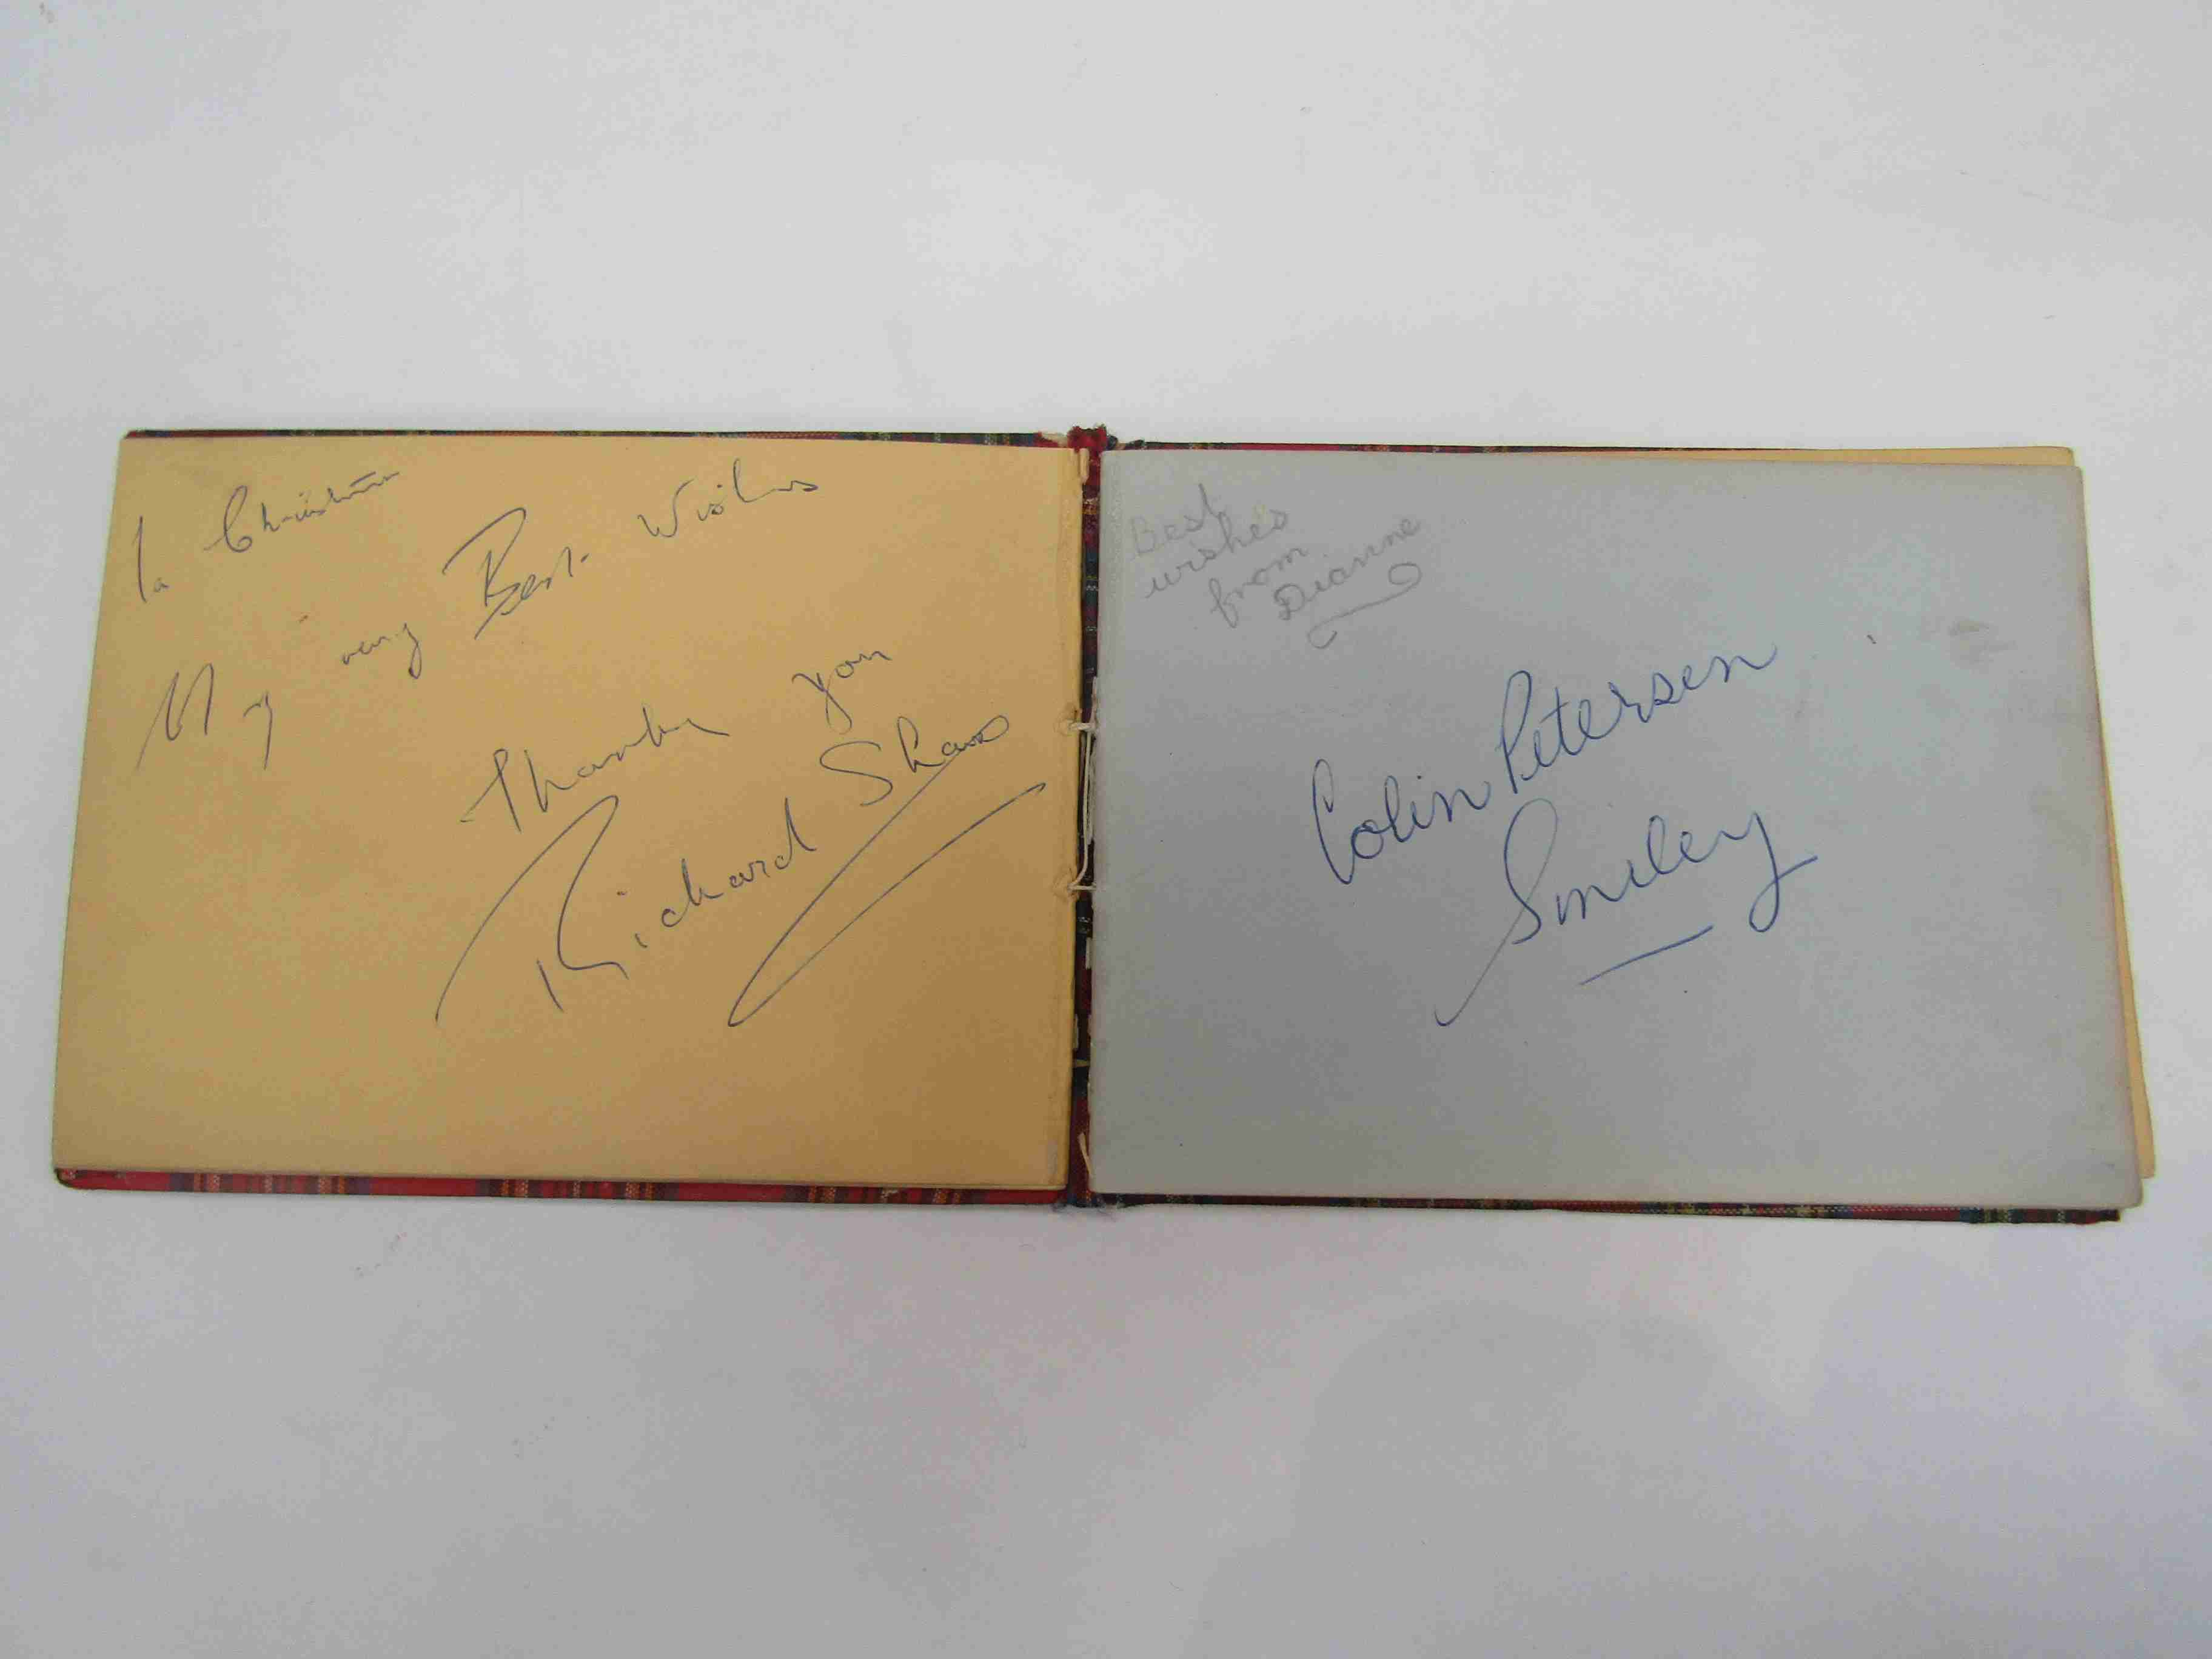 Two 1950s/60s autograph books containing autographs by Benny Hill, Honor Blackman, Barbara Shelley, - Image 16 of 34